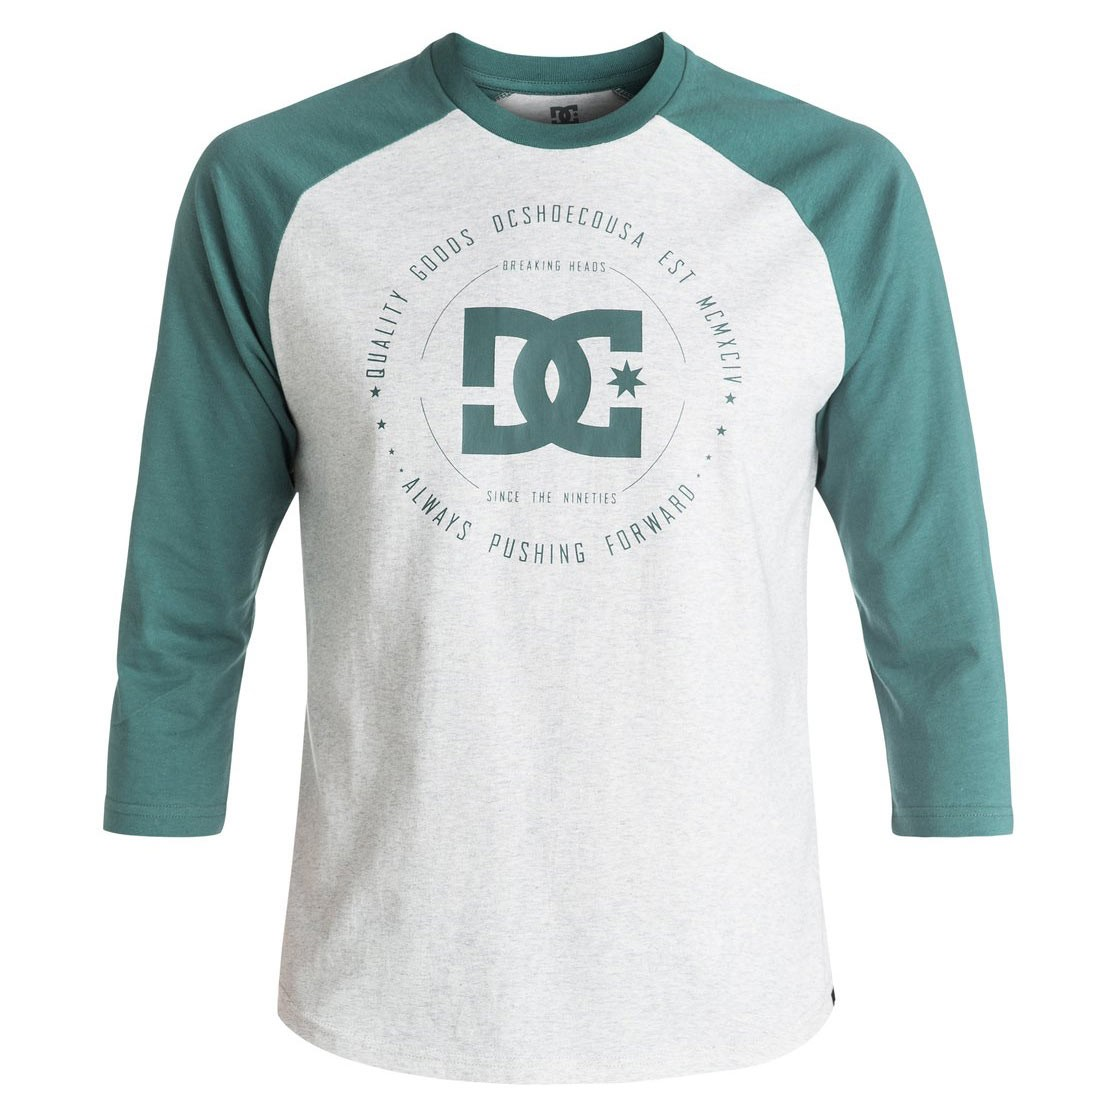 Tričko DC Rebuilt 2 3/4 Raglan light grey heather/sea pine vel.XL 17 + doručení do 24 hodin